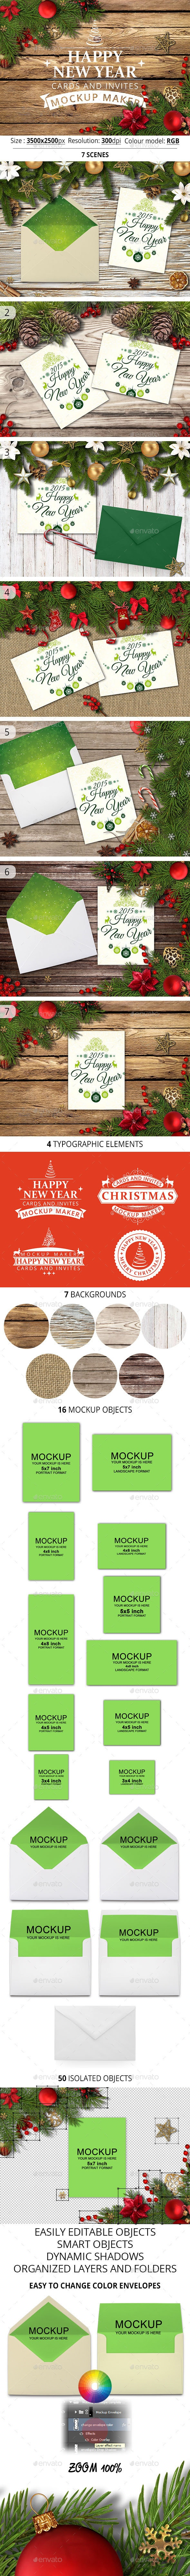 Happy New Year Cards And Invites Mockup Maker - Hero Images Graphics